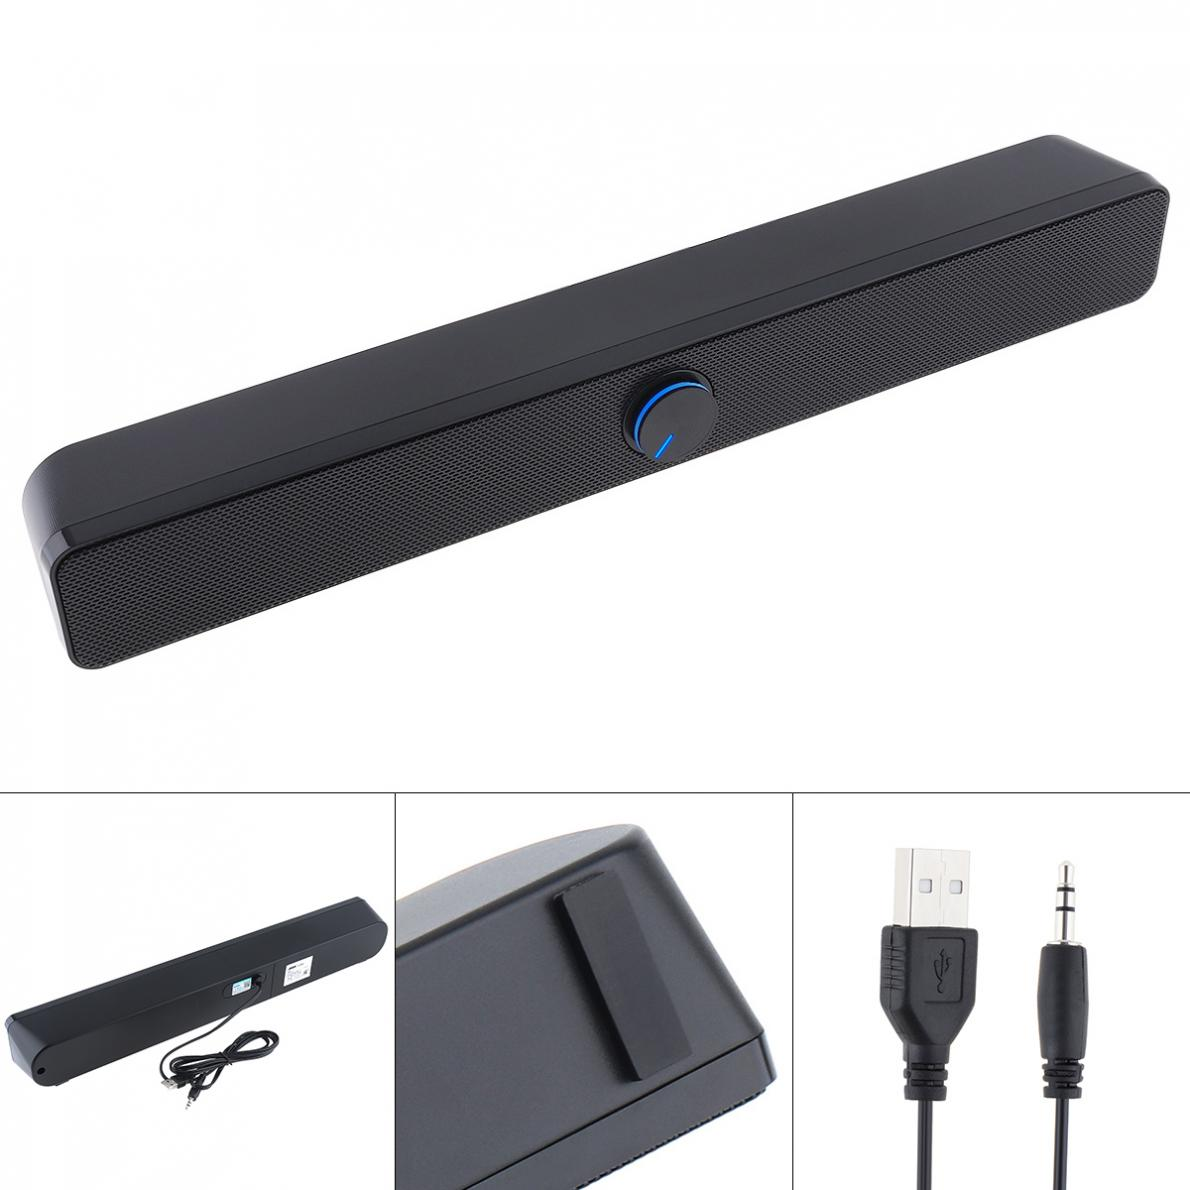 SADA V -193 Desktop Strip Soundbar Subwoofer Speaker with 3.5mm Stereo Jack and USB Powered for PC / Laptop / Mobile Phone